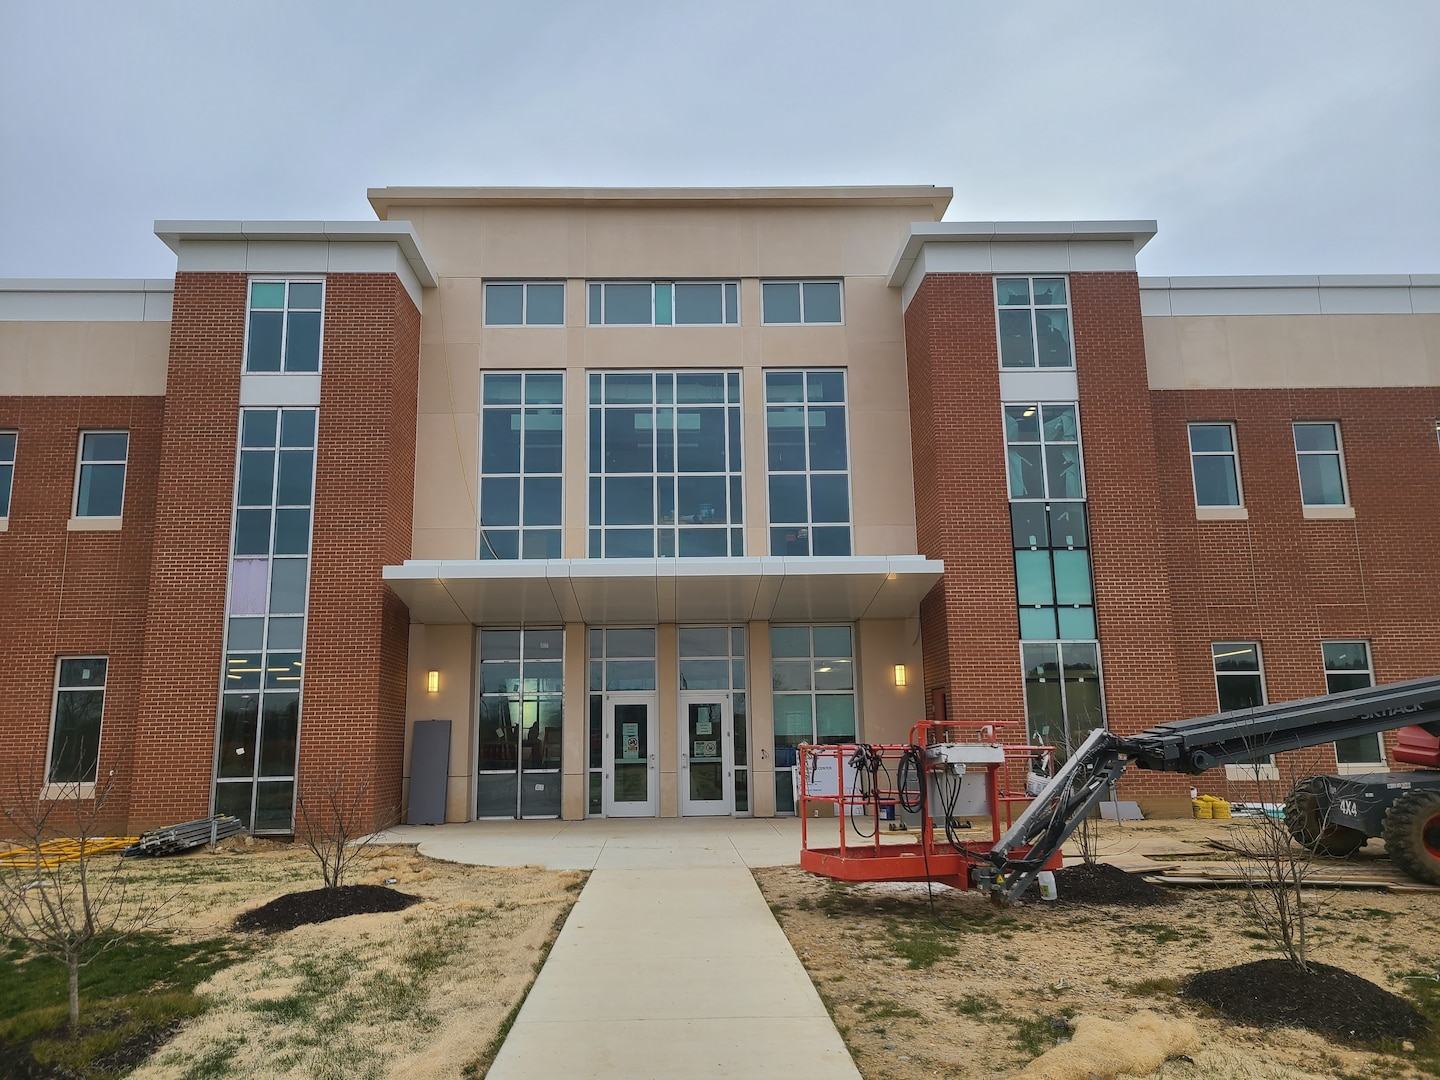 The 91st Cyber Brigade headquarters currently under construction at Fort Belvoir, Virginia.